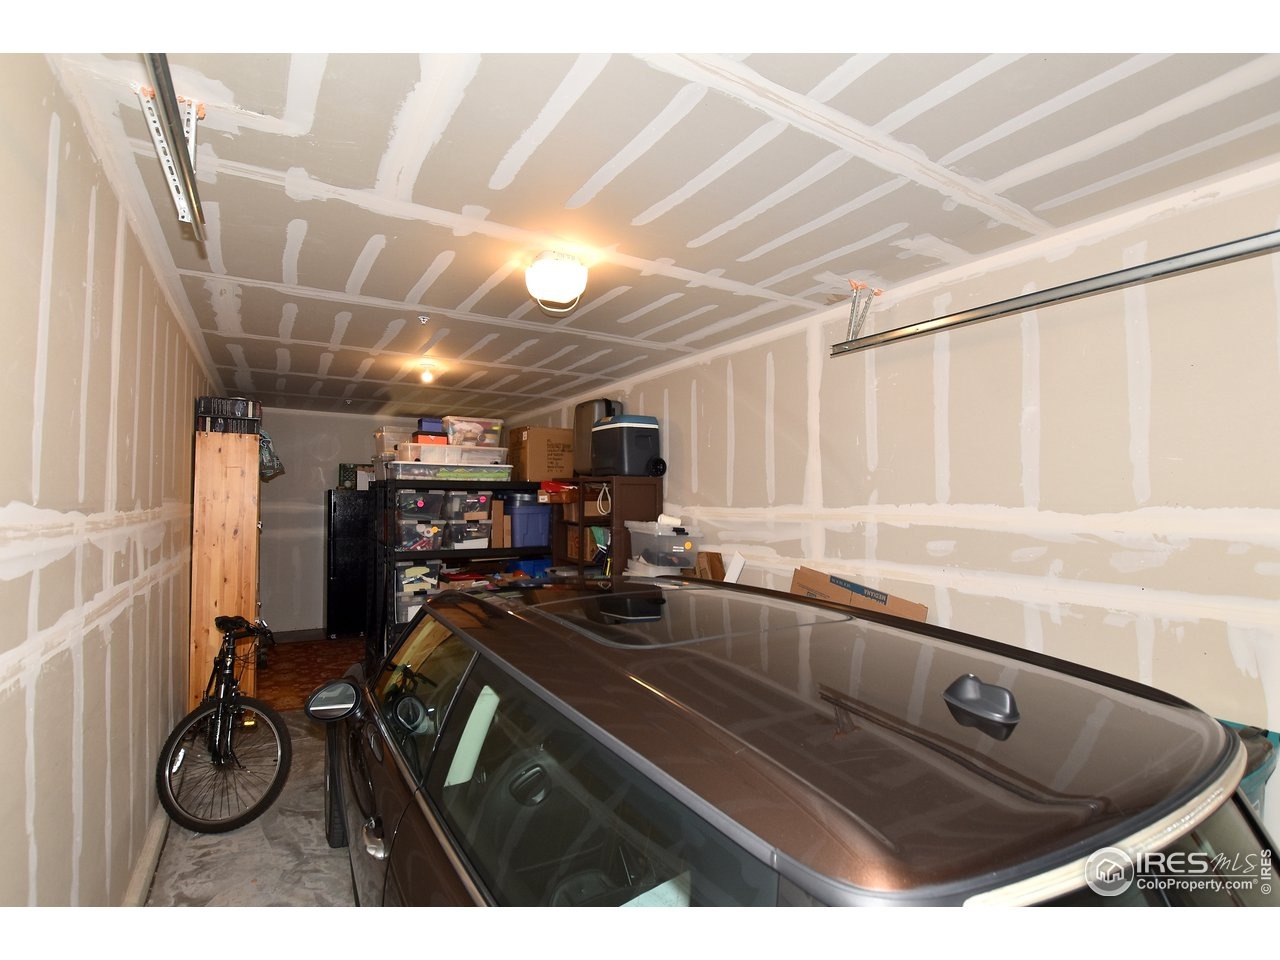 Room for a car, bikes and plenty of storage towards front section! Only 2 garages this size in building, were a premium upgrade!